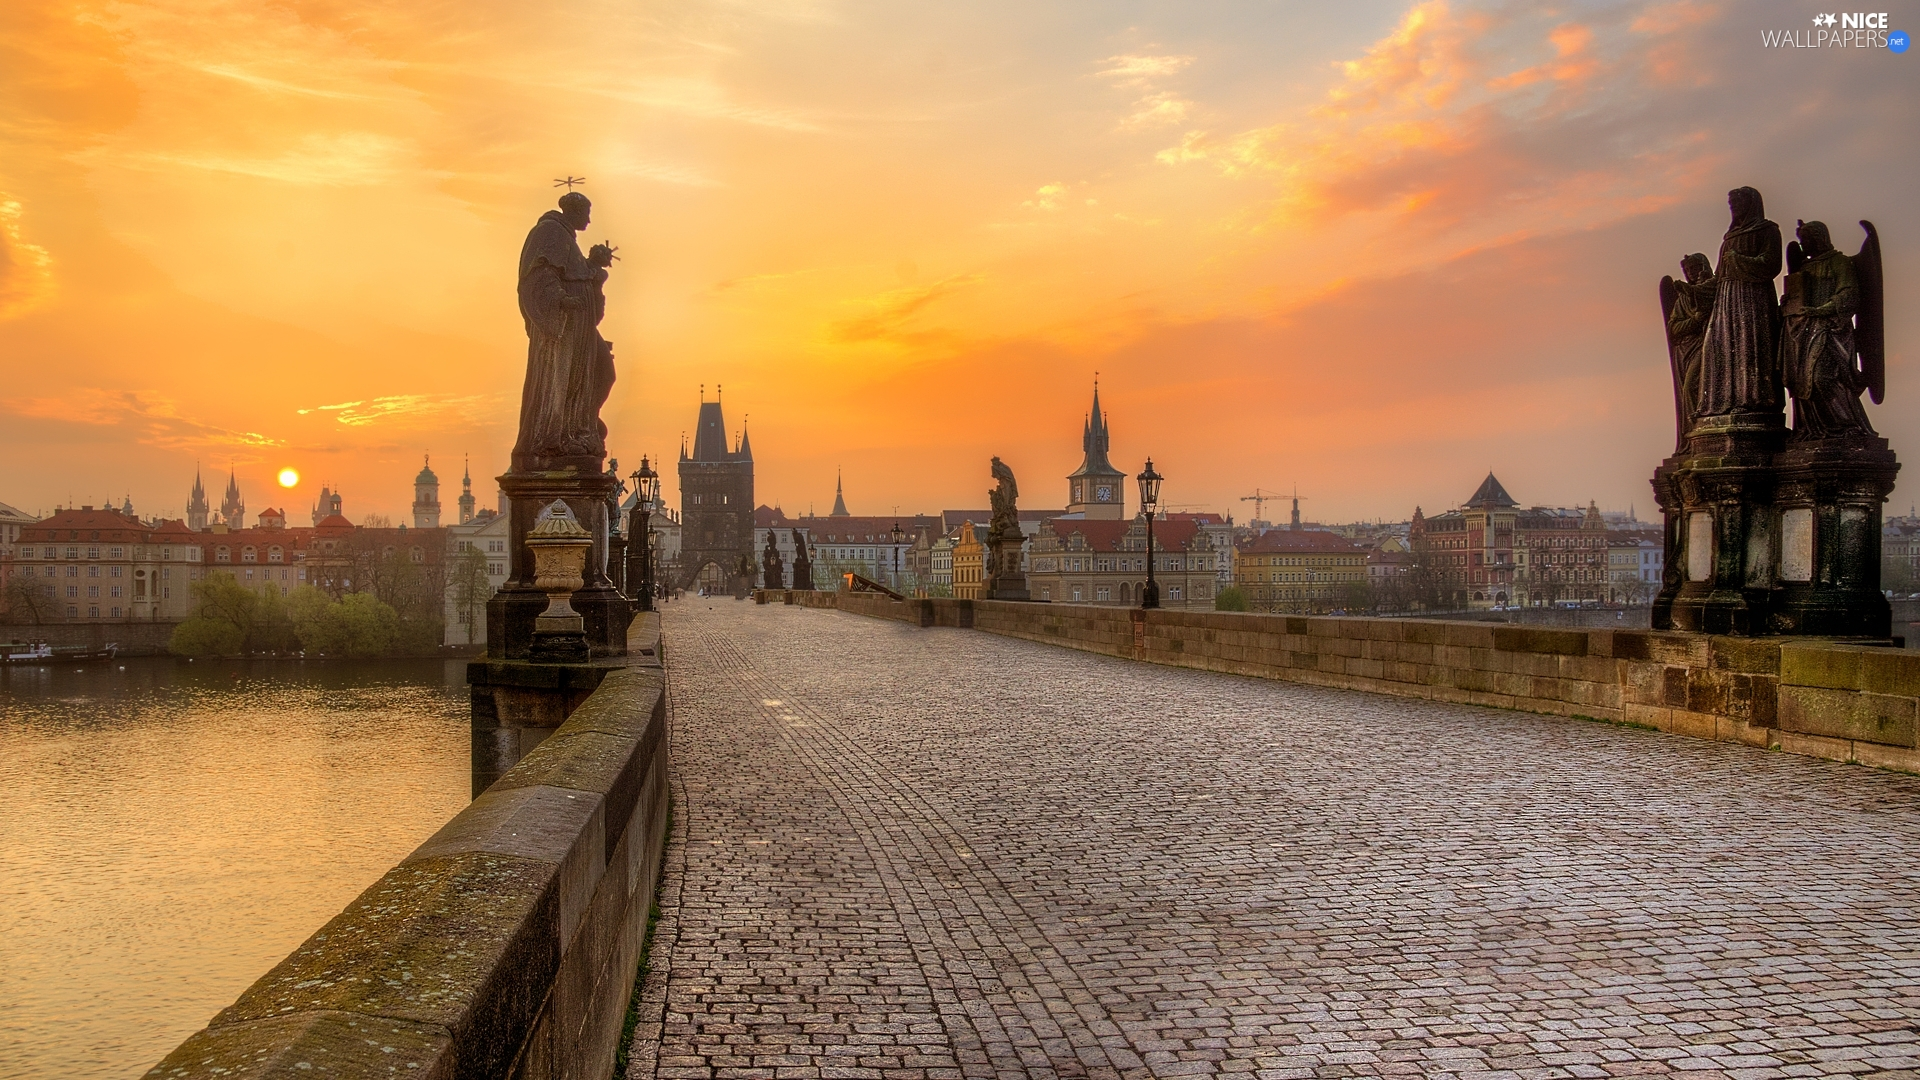 figure, Charles Bridge, Prague, Czech Republic, Sunrise, statues